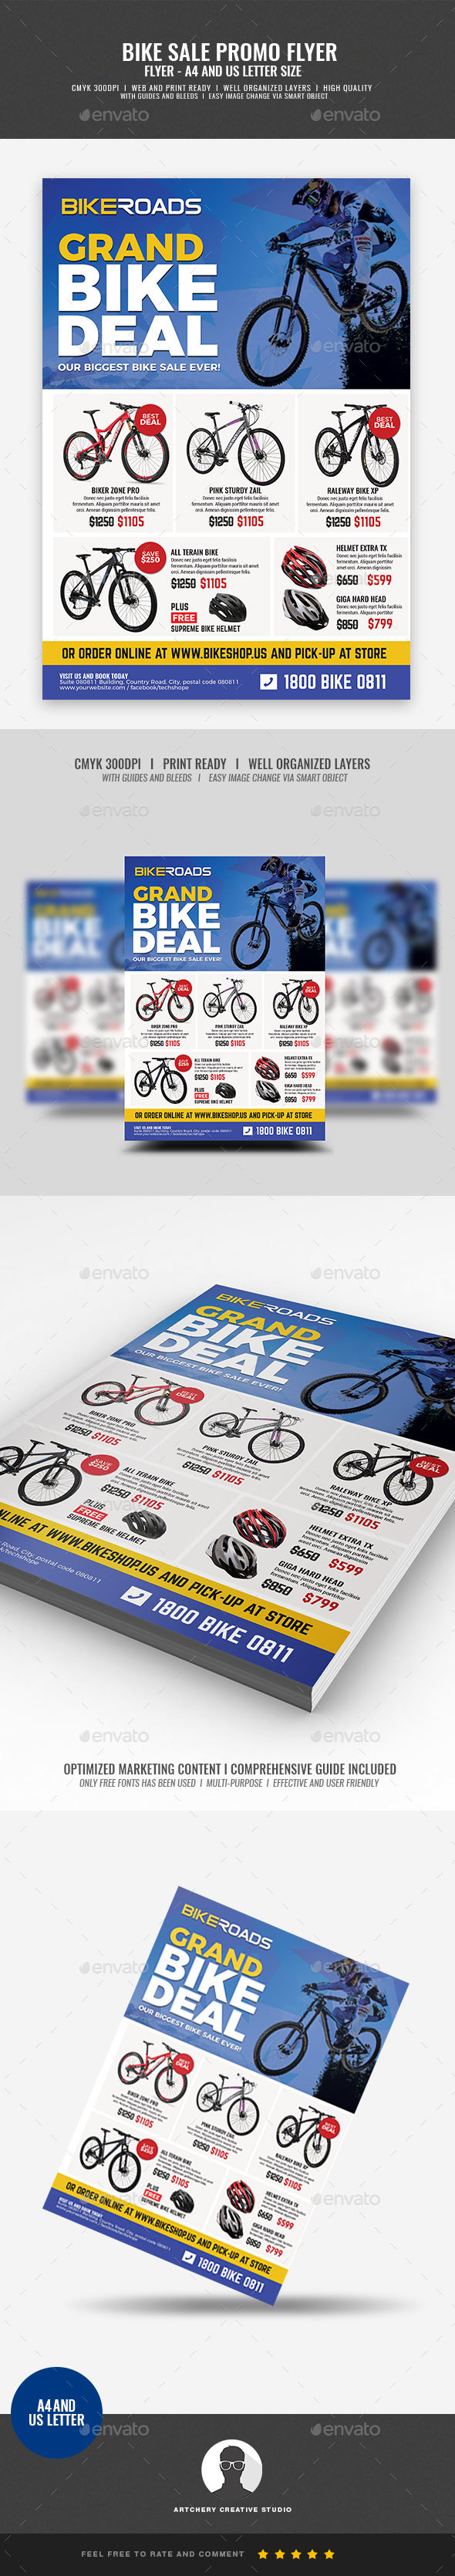 Bicycle Sale Promo Flyer - Corporate Flyers